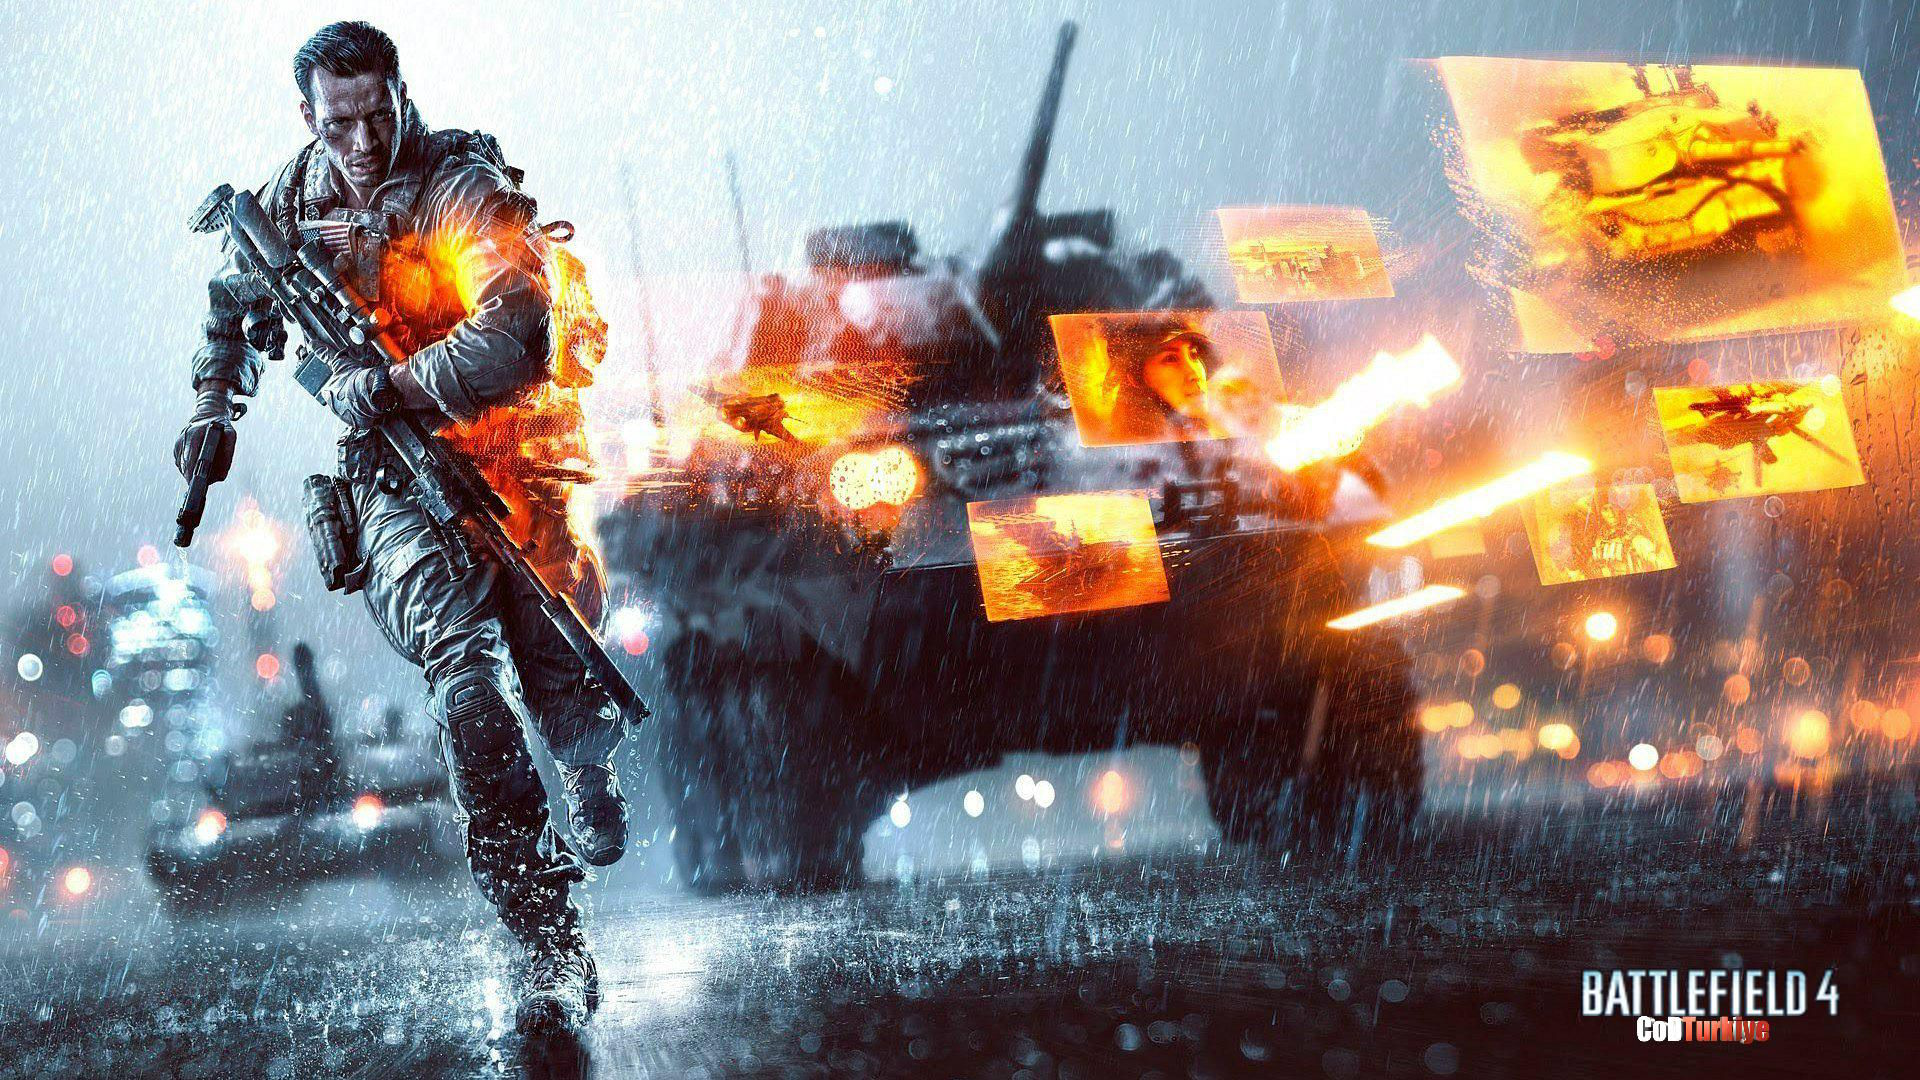 Battlefield 4 Wallpapers 1920x1080